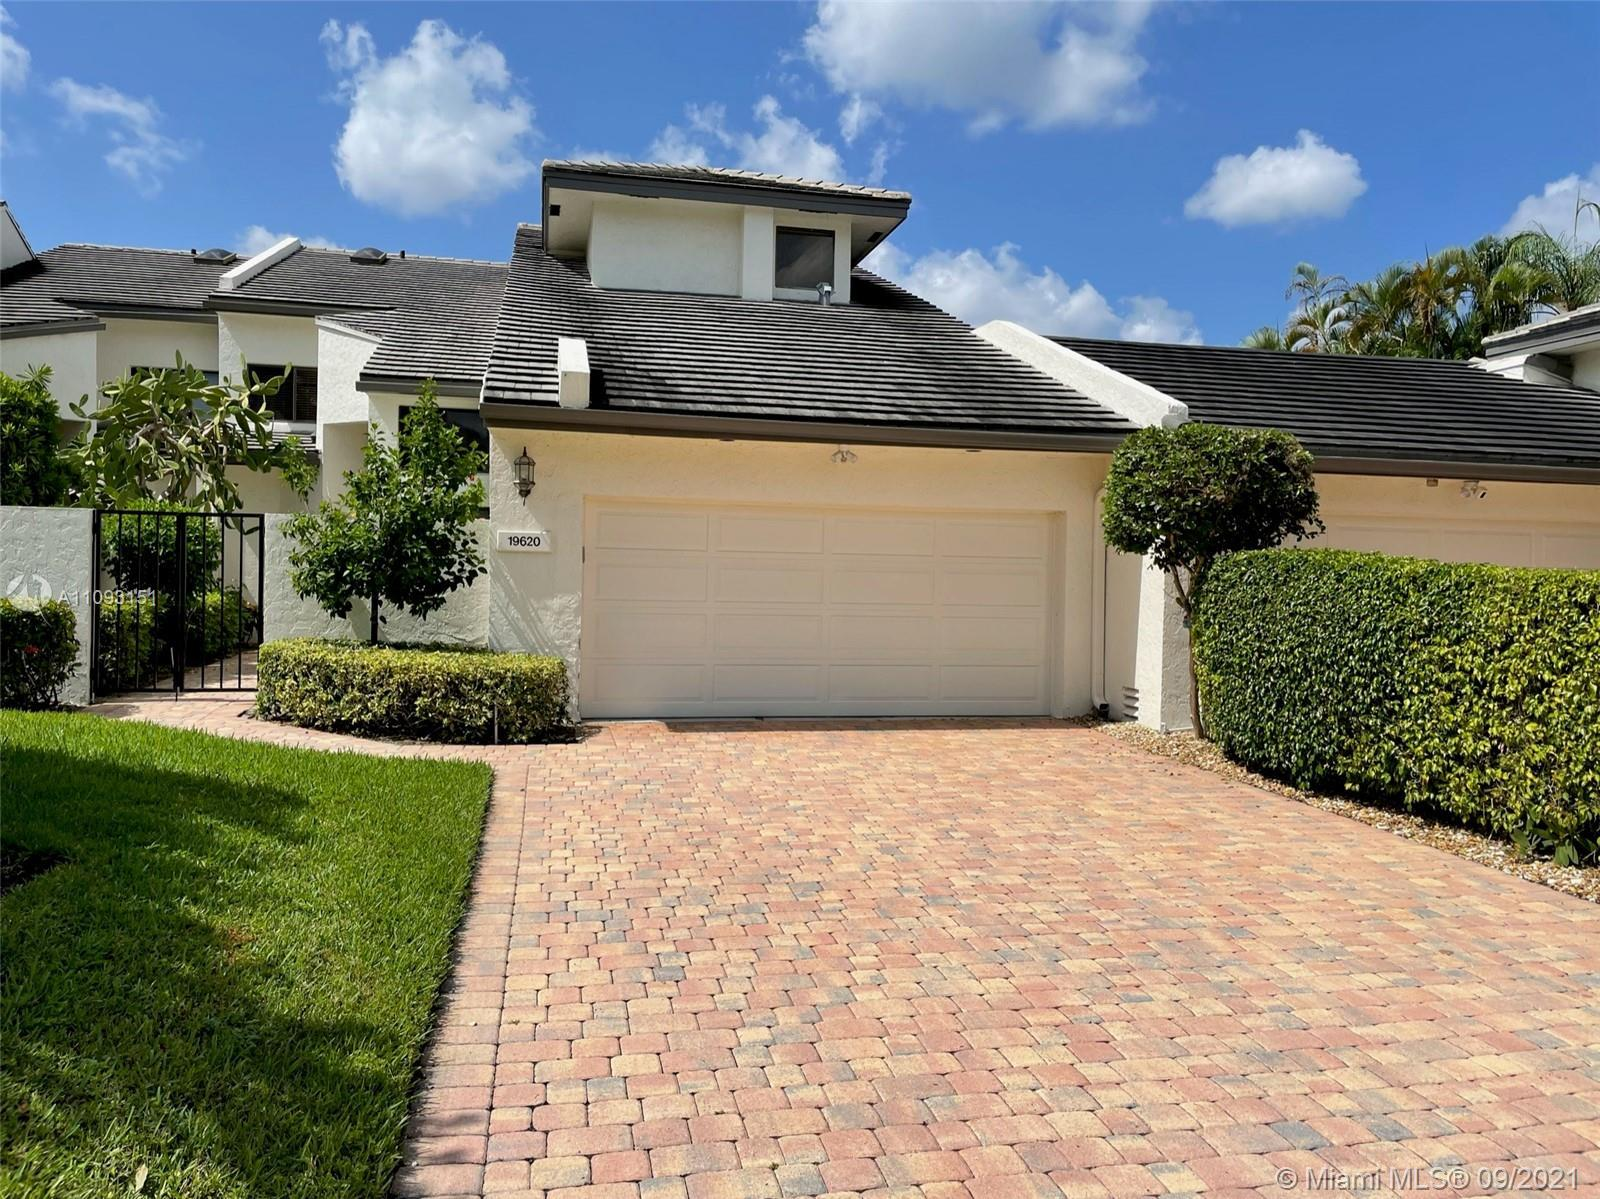 Welcome to BOCA WEST COUNTRY CLUB, the Nation's #1 Private Residential Country Club. This spacious 4